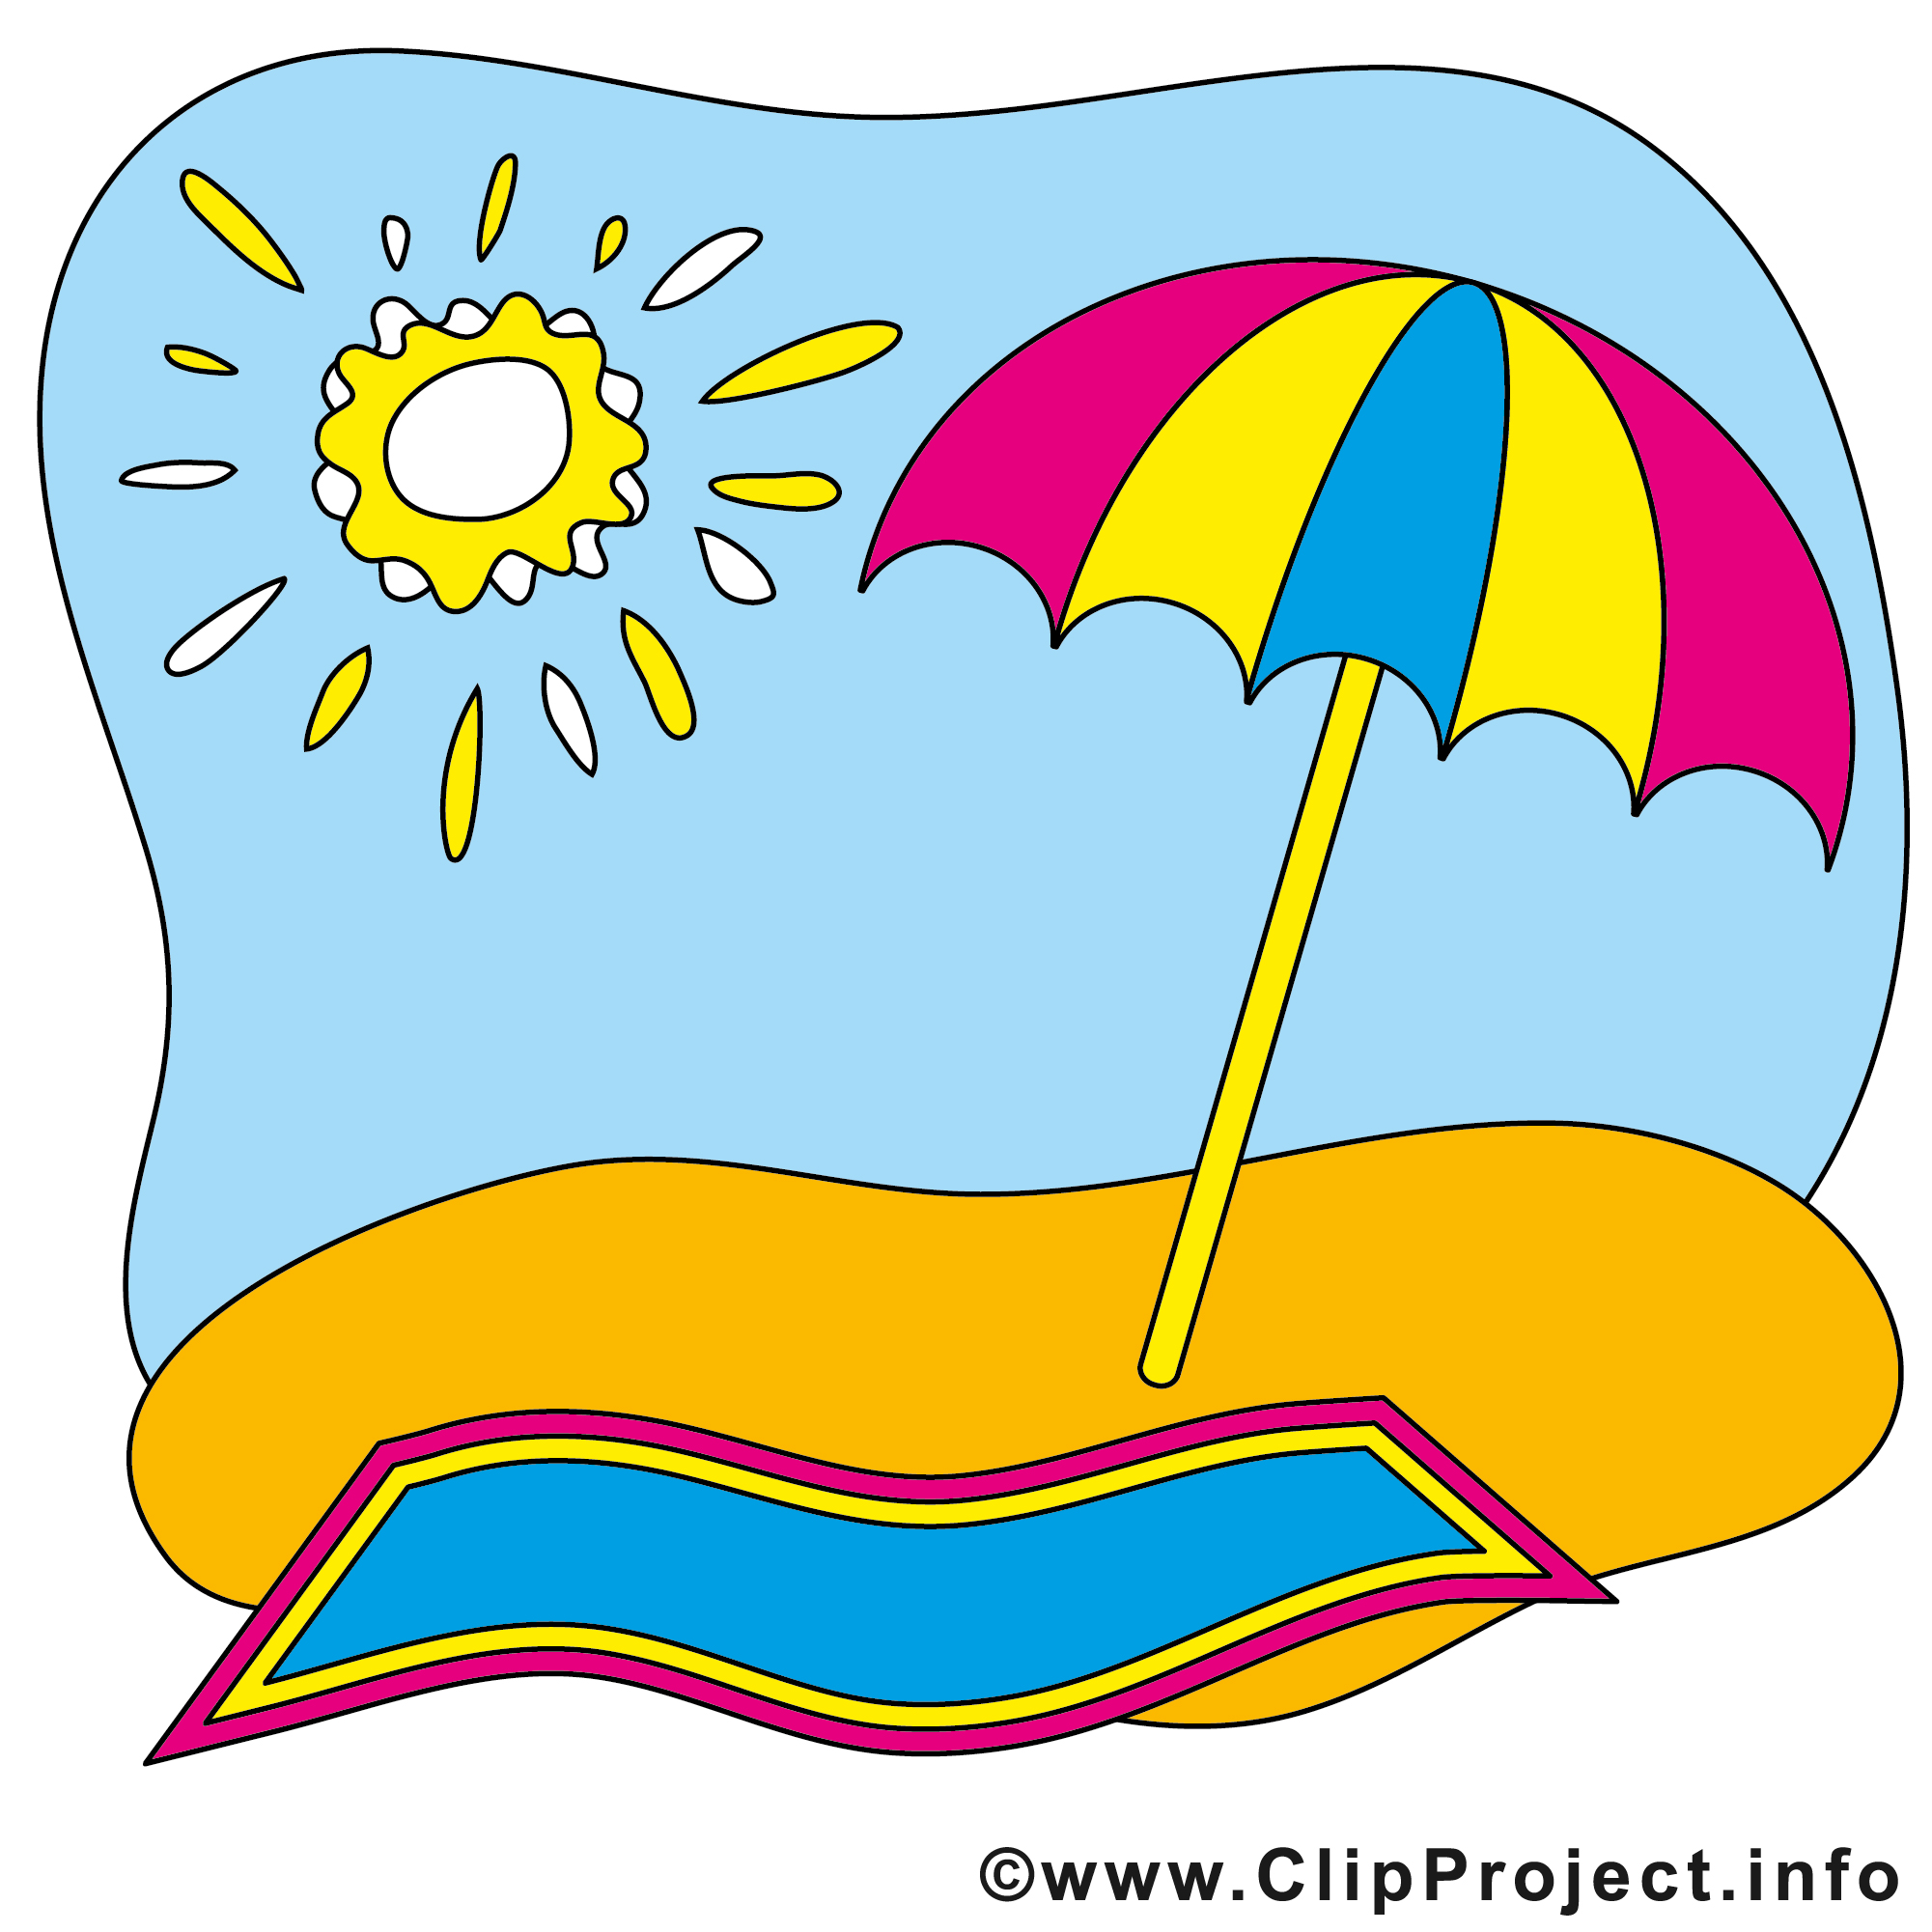 clipart urlaub animiert - photo #12